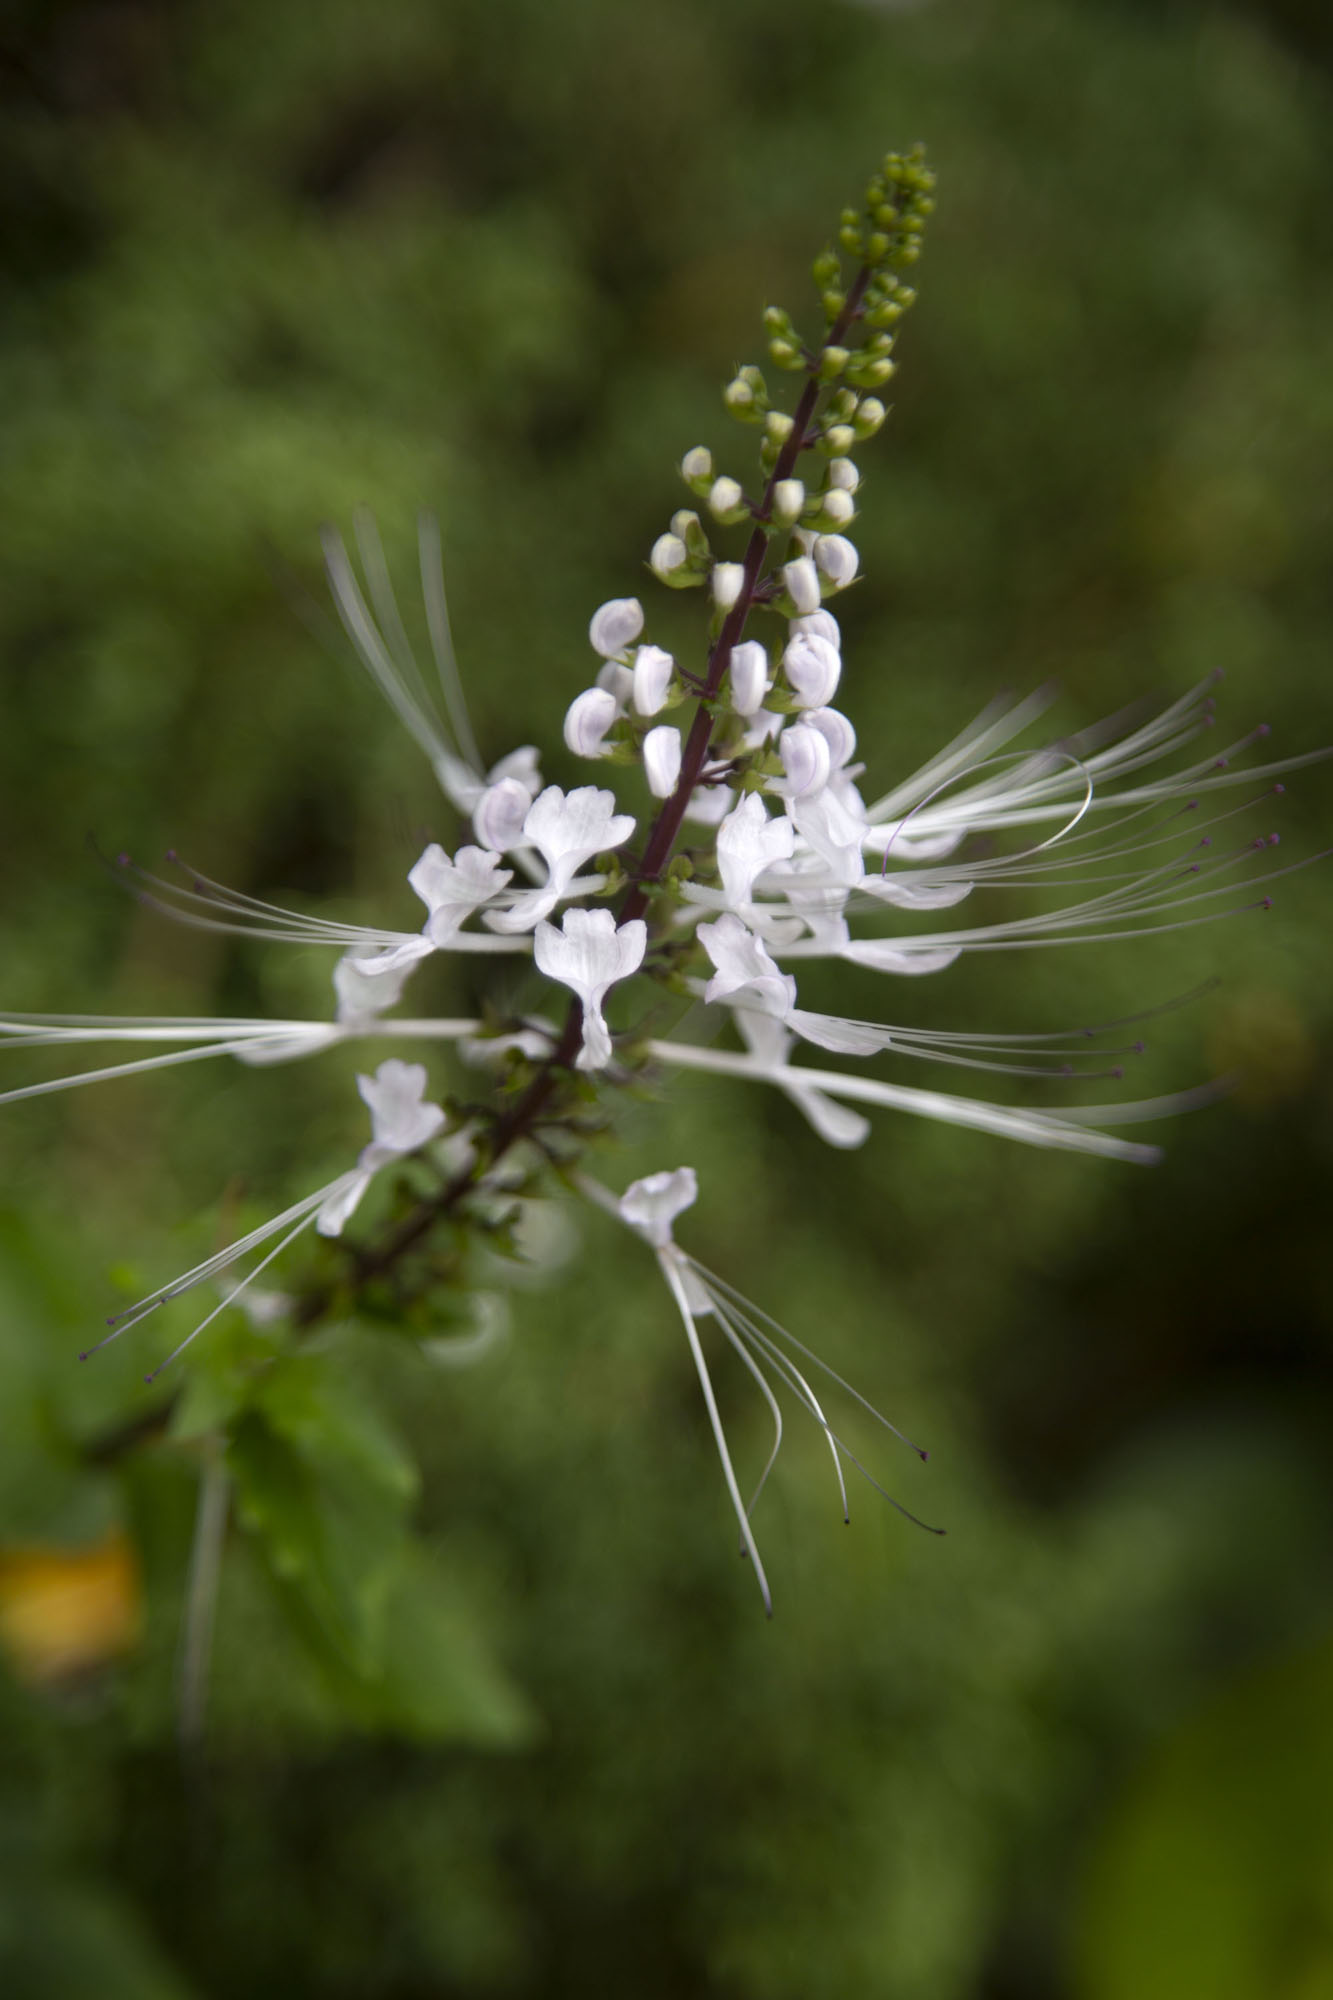 Exquisite white flower in the botanic gardens | Singapore Botanic Gardens | Singapore